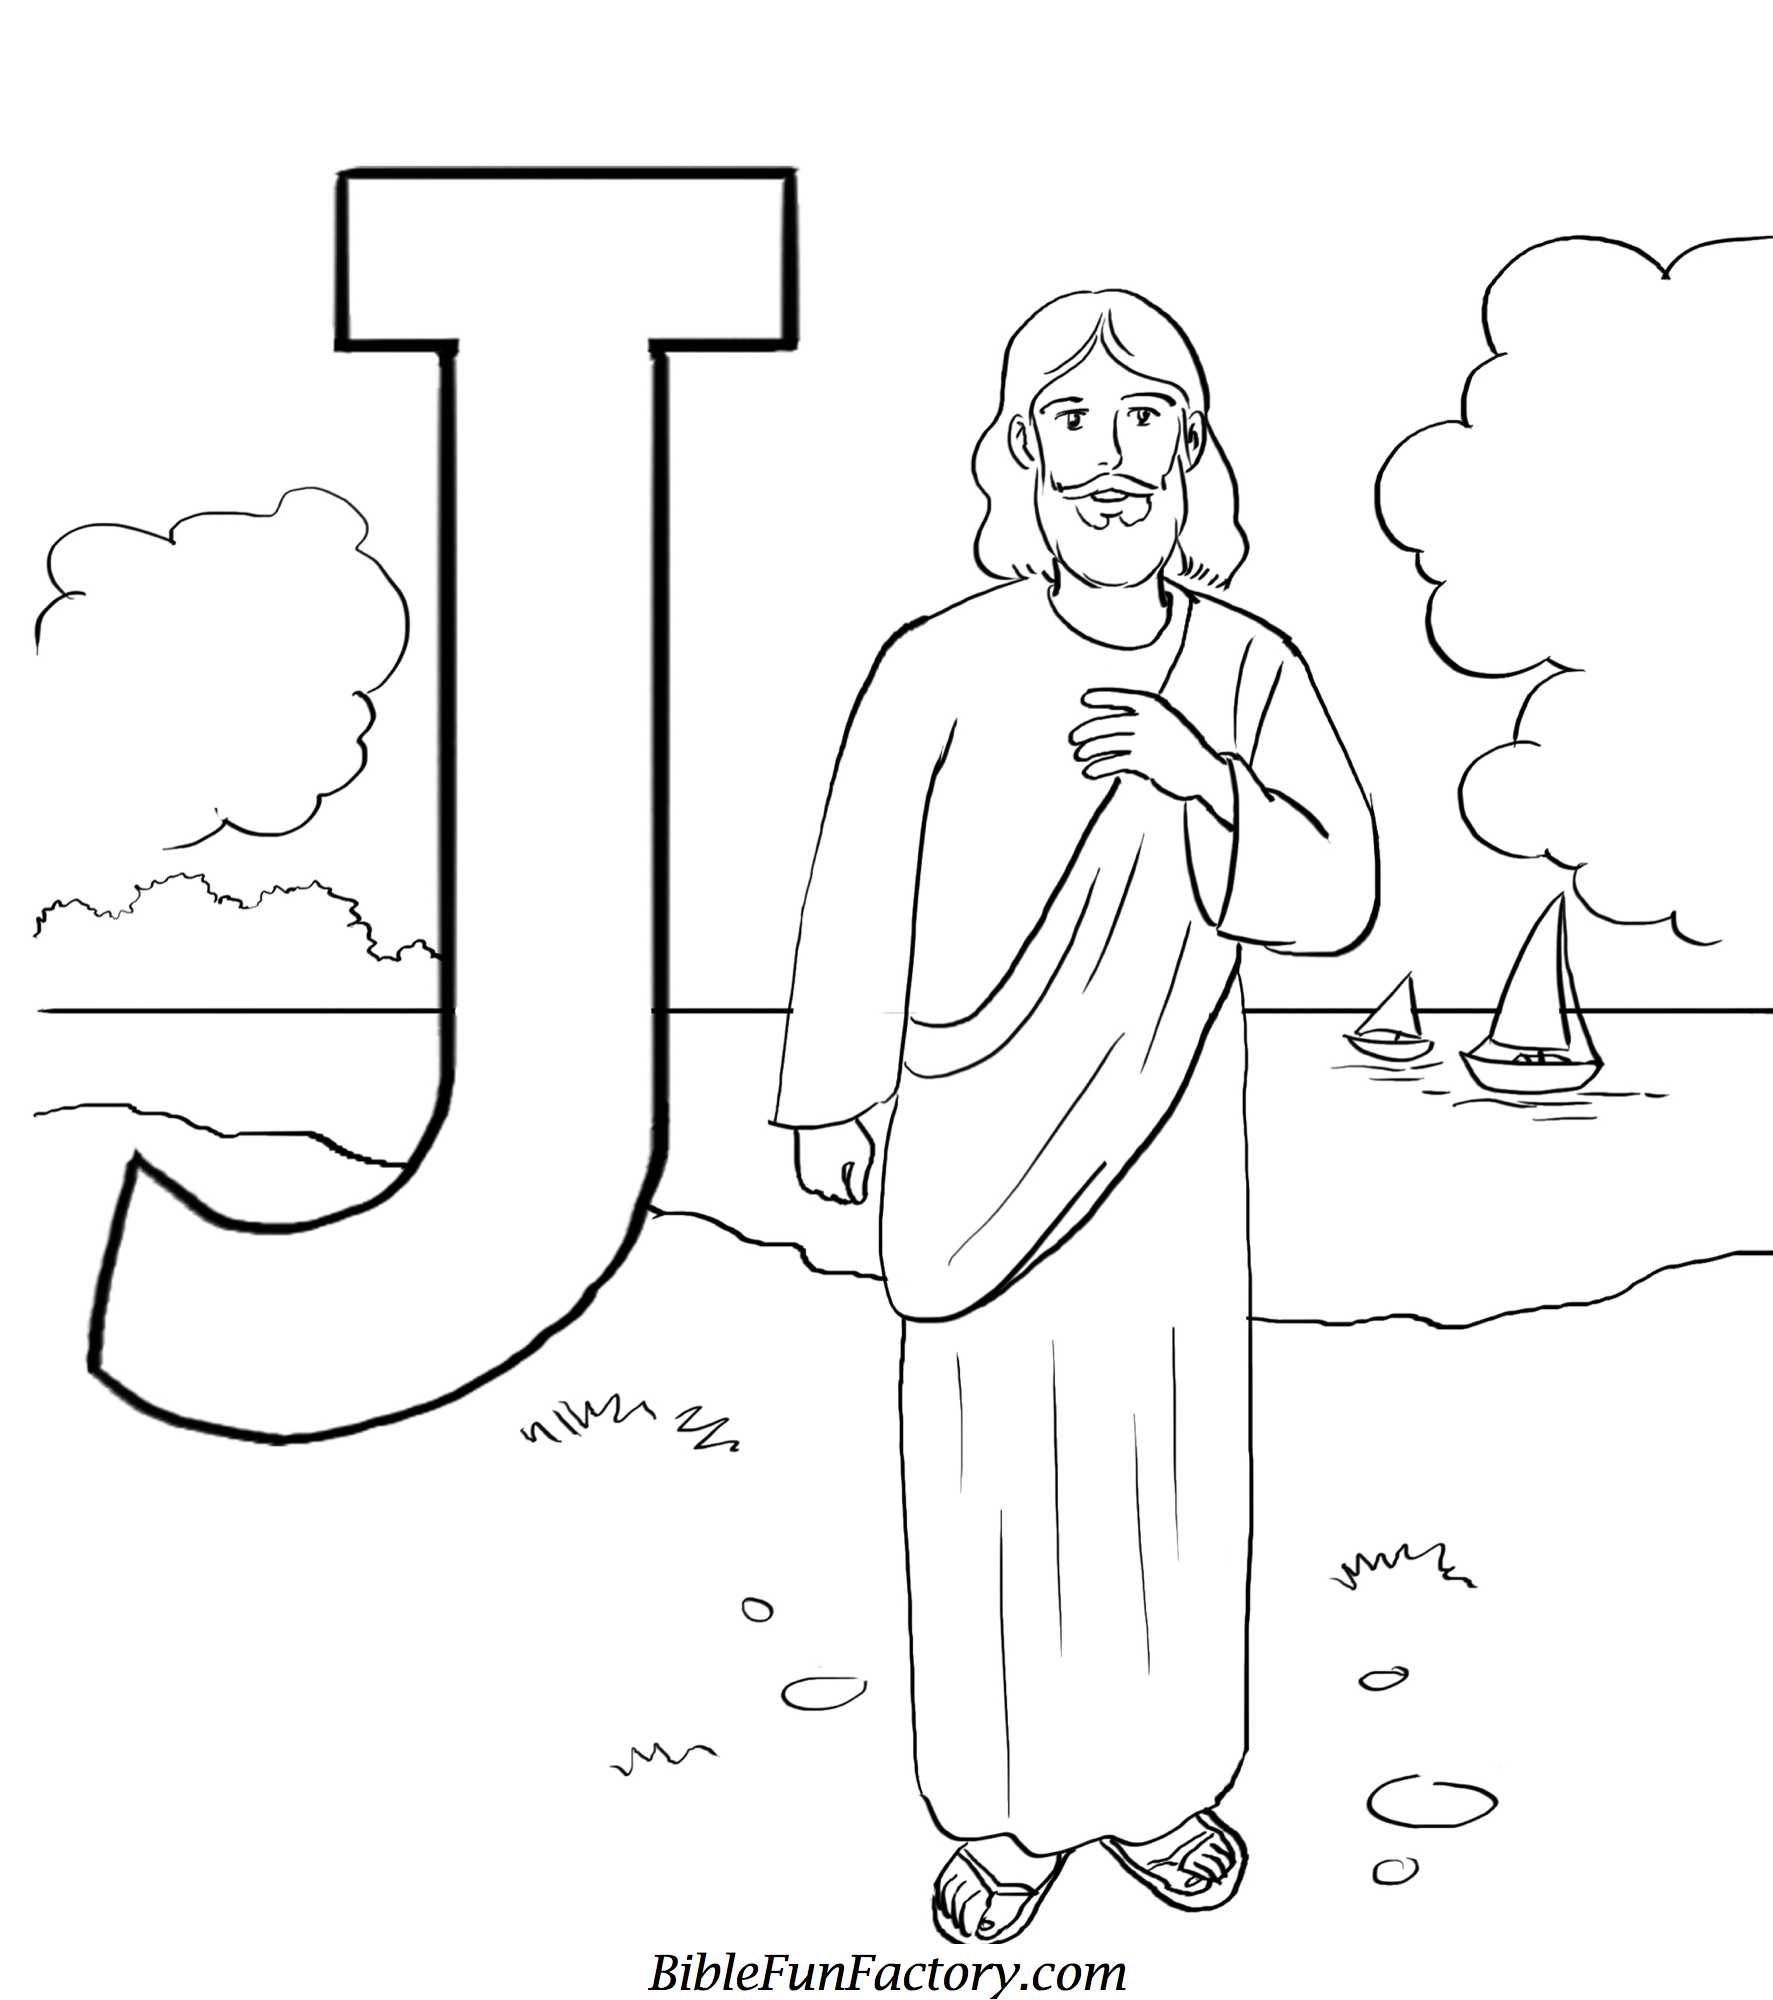 jesus for coloring glorious jesus coloring bible coloring free printable coloring jesus for